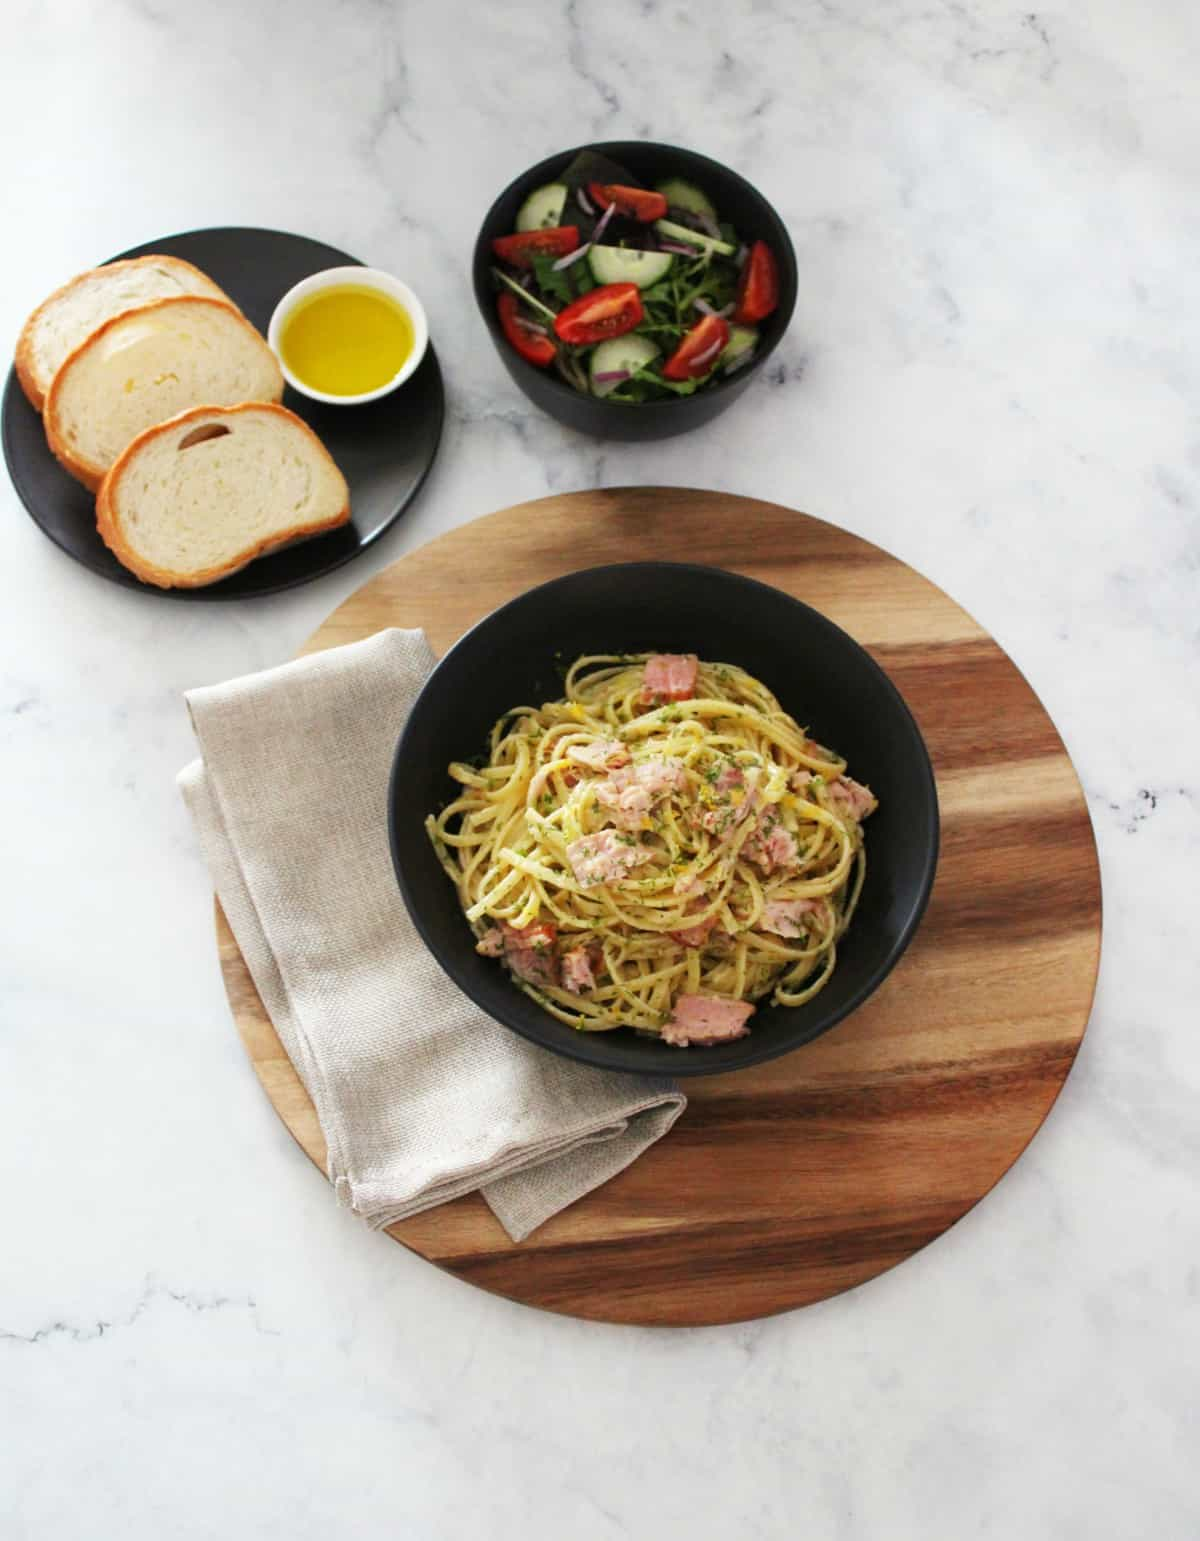 overhead shot of creamy tuna pasta in black bowl on wooden board, with a plate of bread and a bowl of salad.